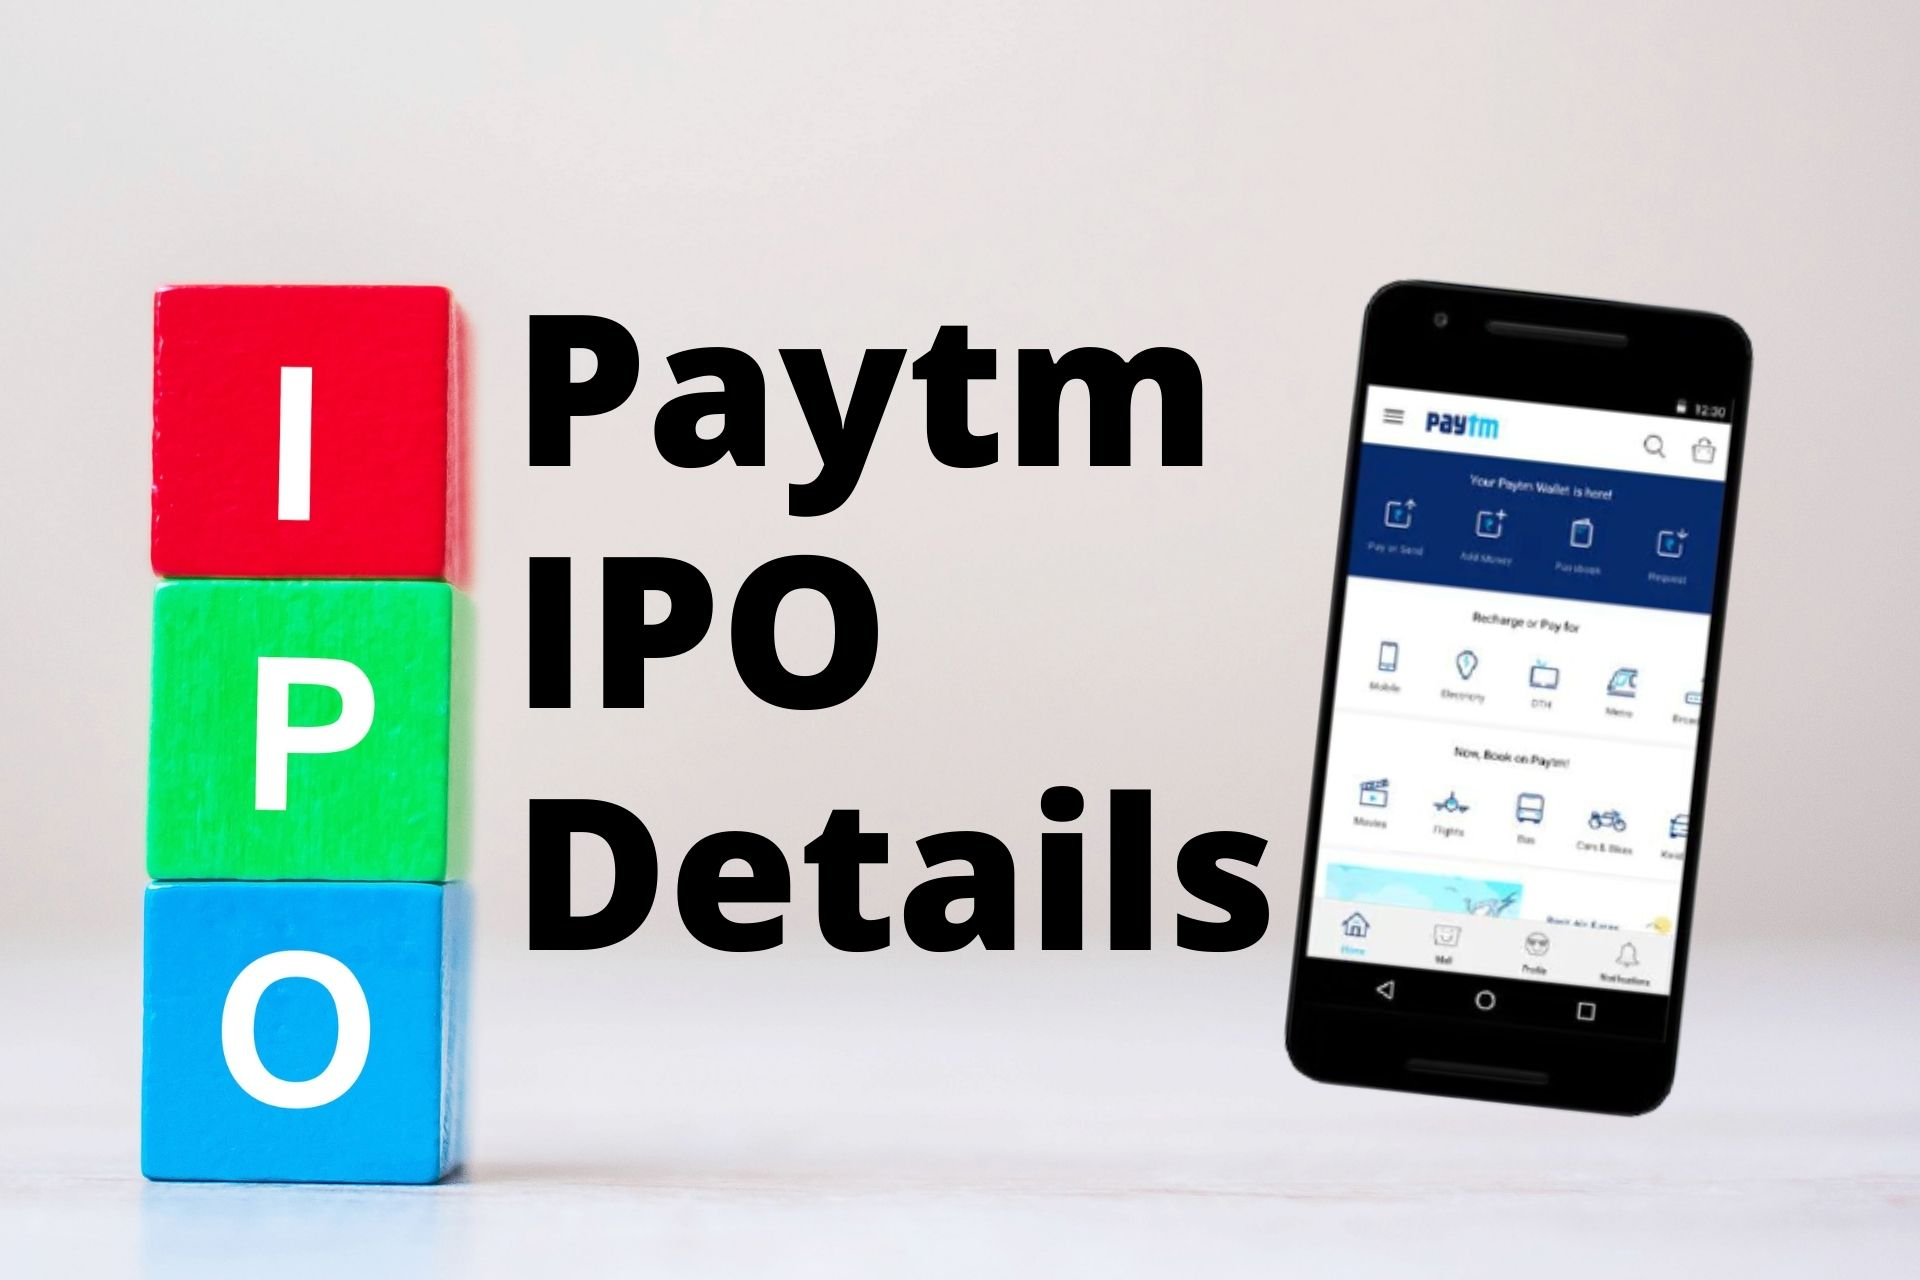 Paytm IPO Details (2021): Everything You need to know on India's Largest IPO!